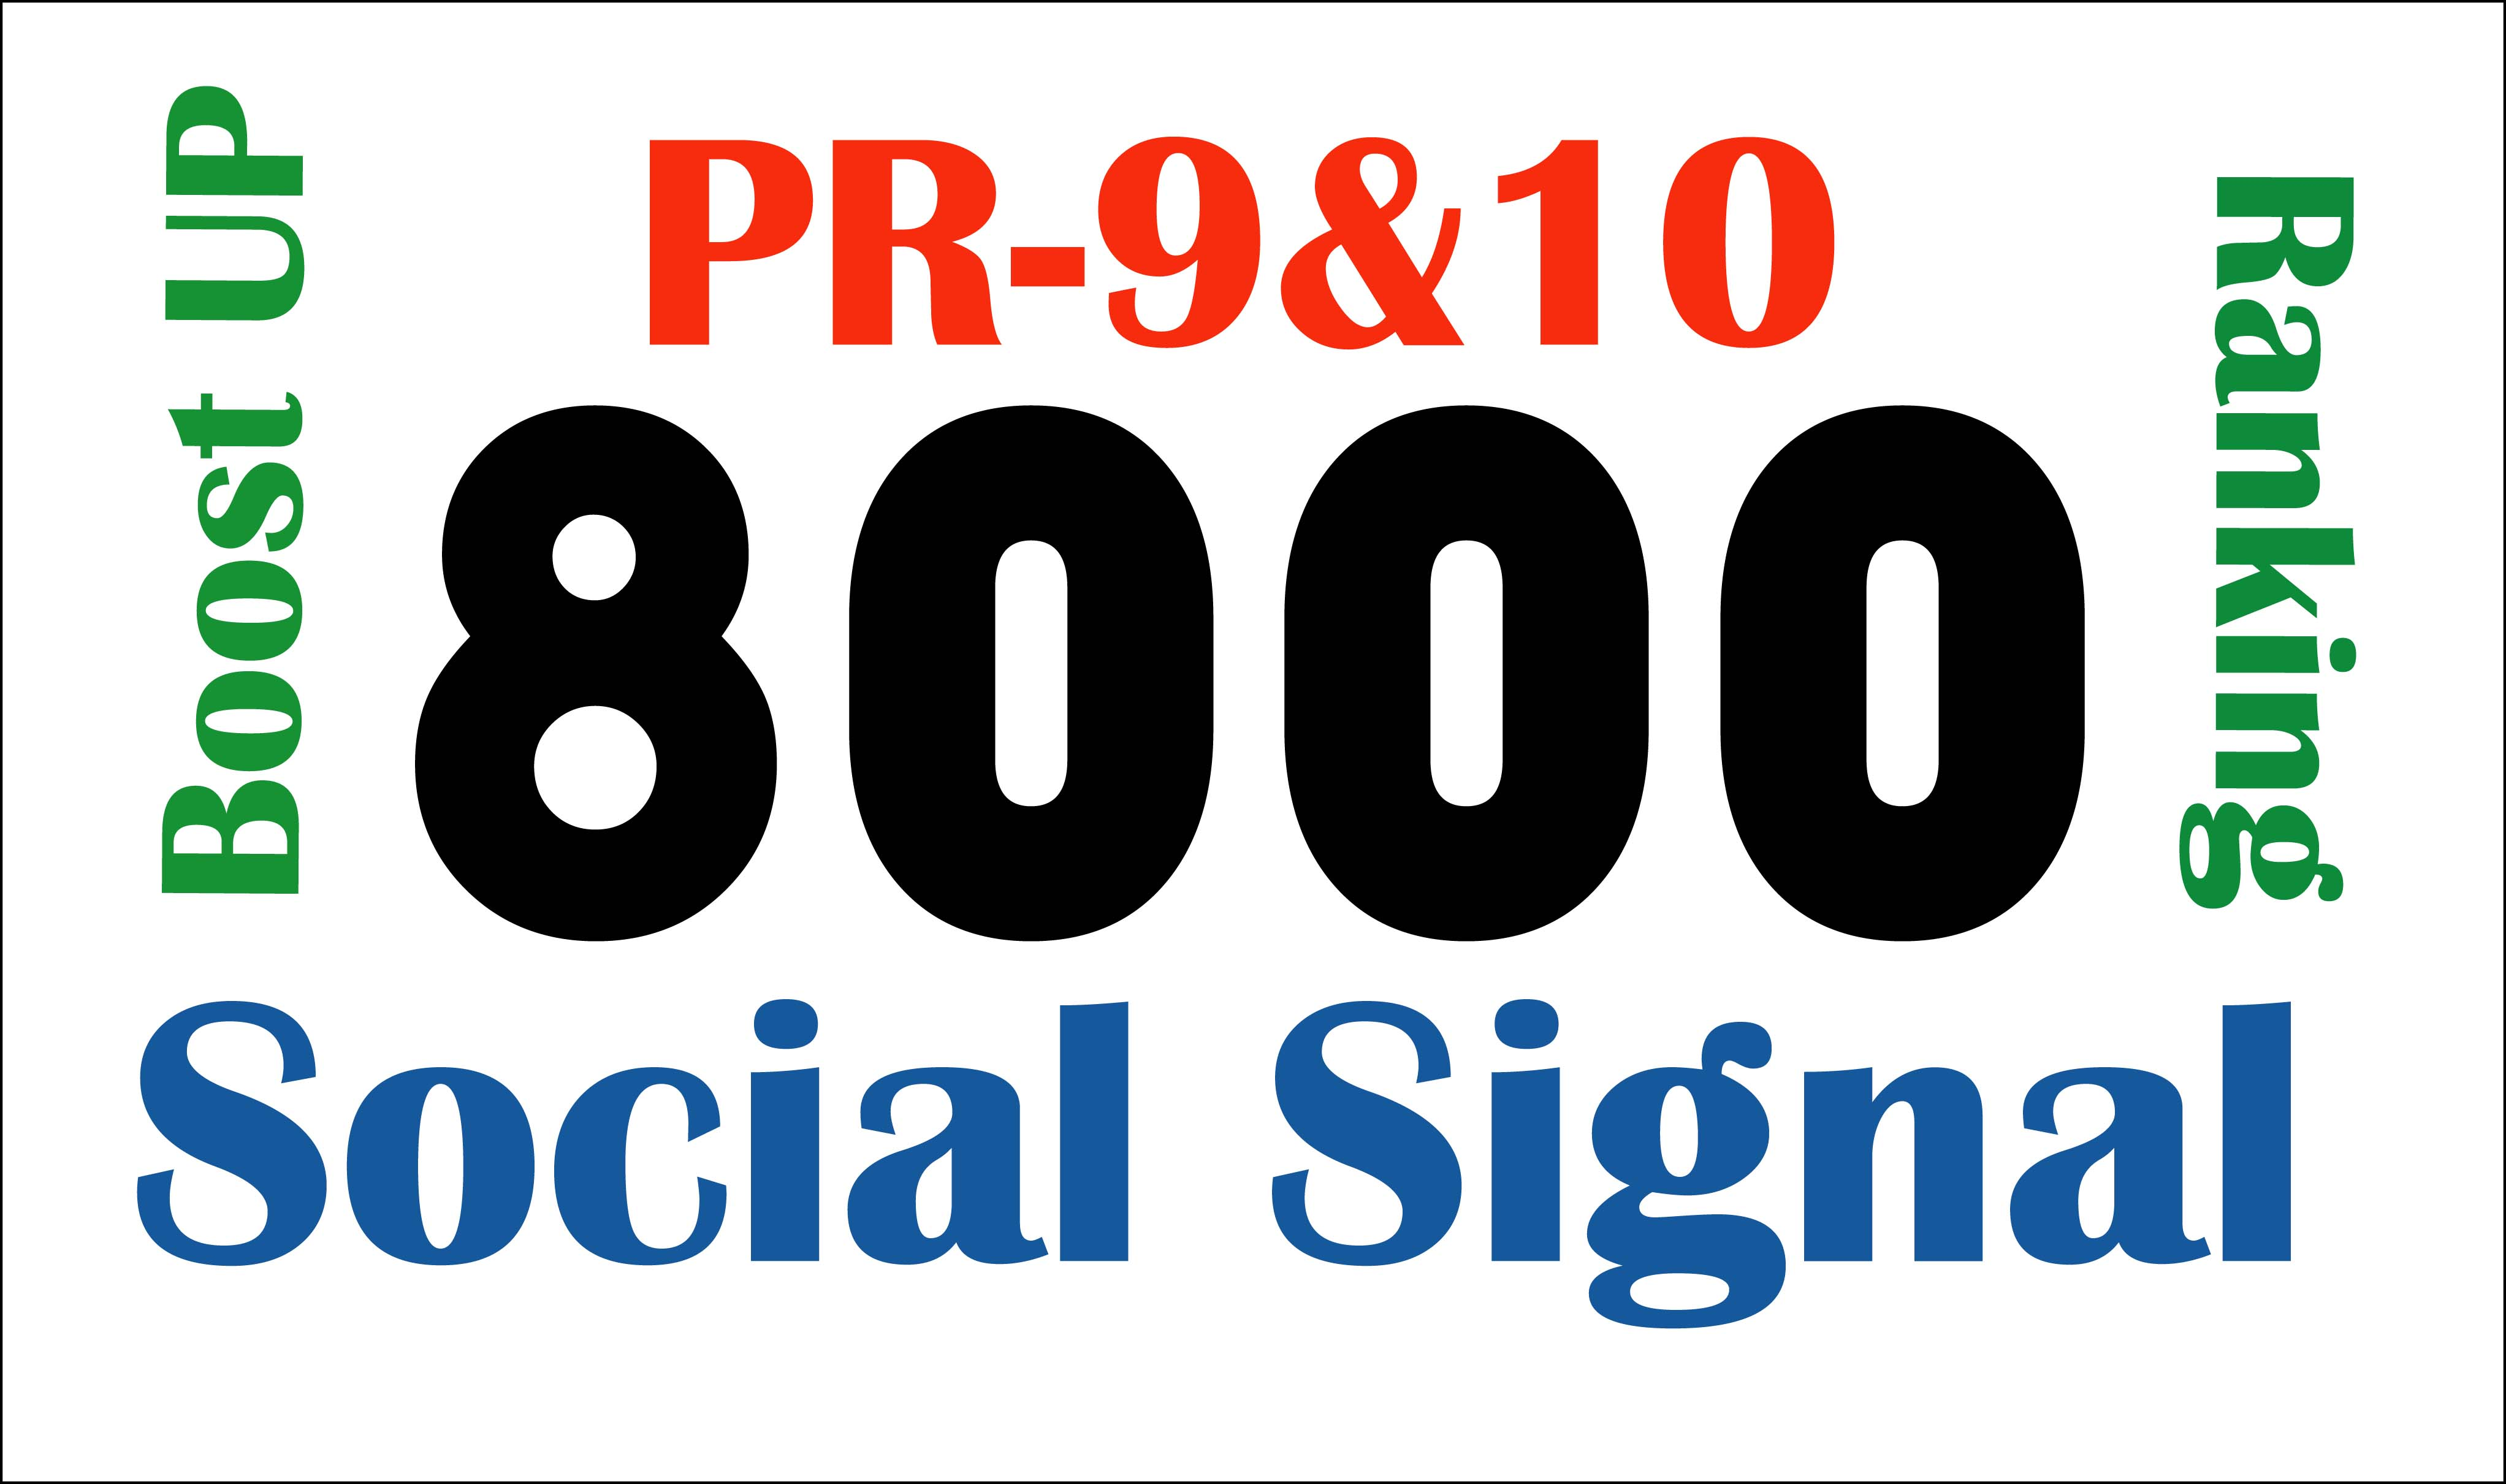 Real 8000 PR-10 & 9 social signals to boost your ranking on Google